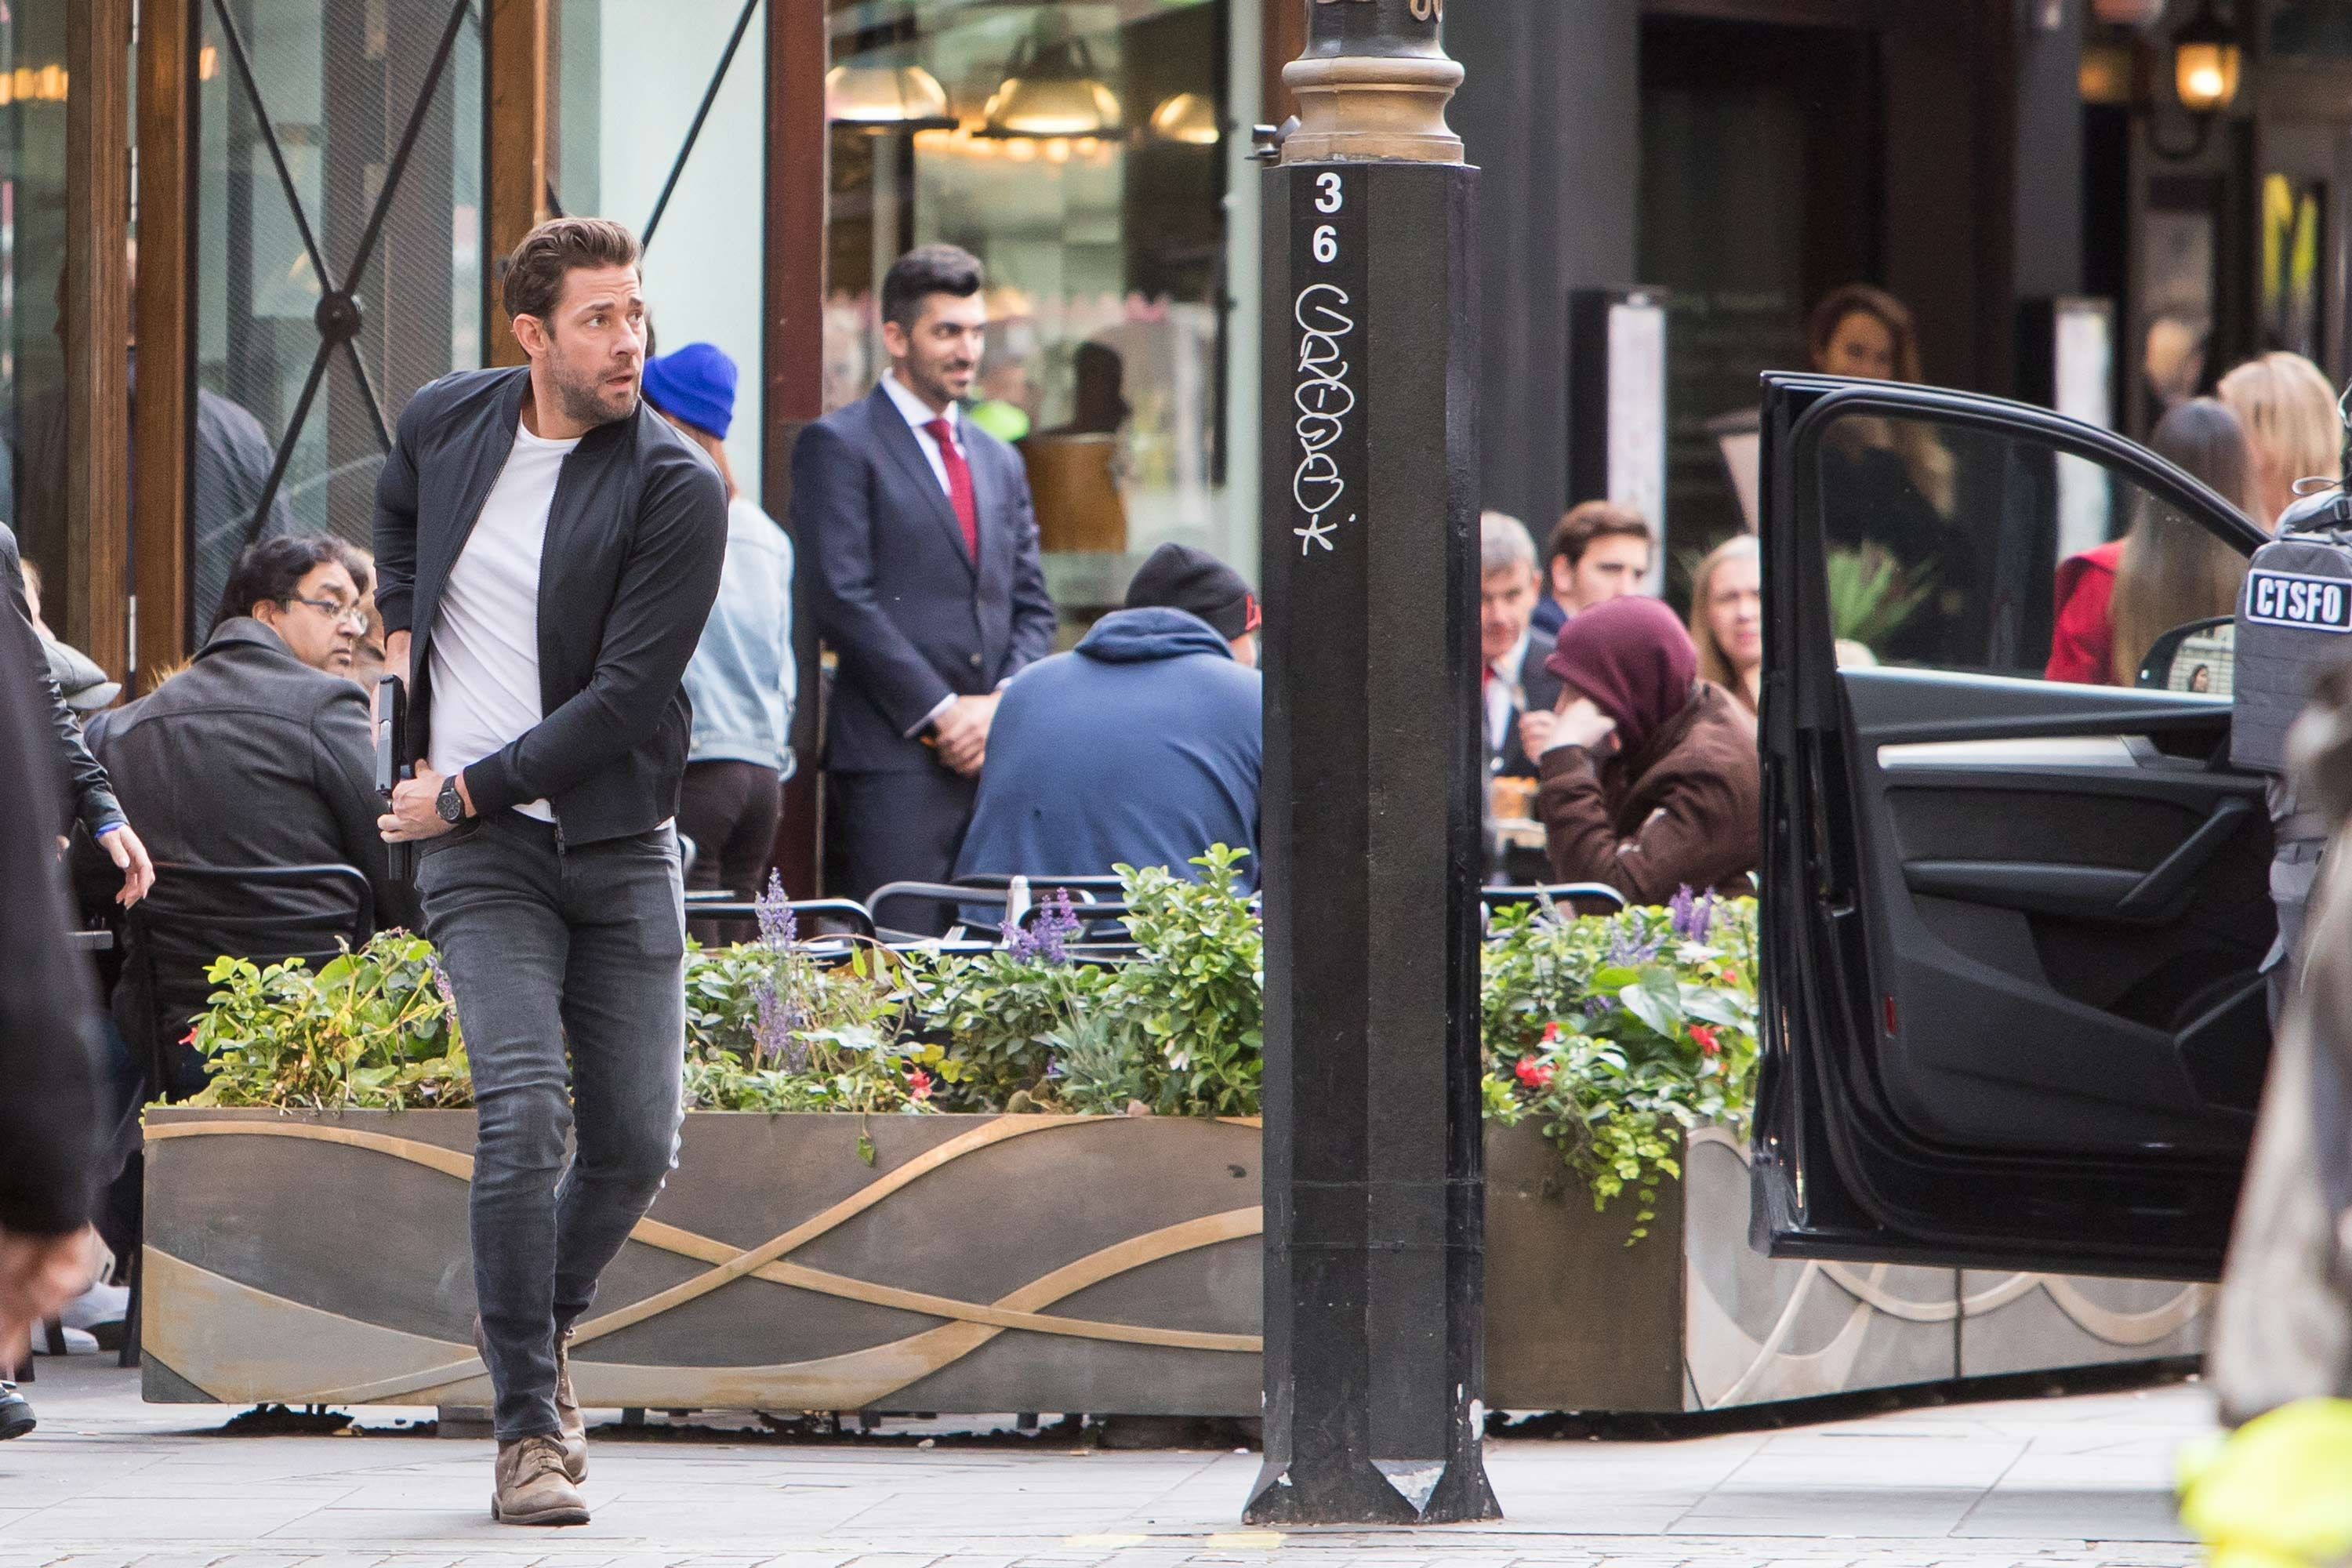 Jack Ryan season 2 pictures in London give first look at